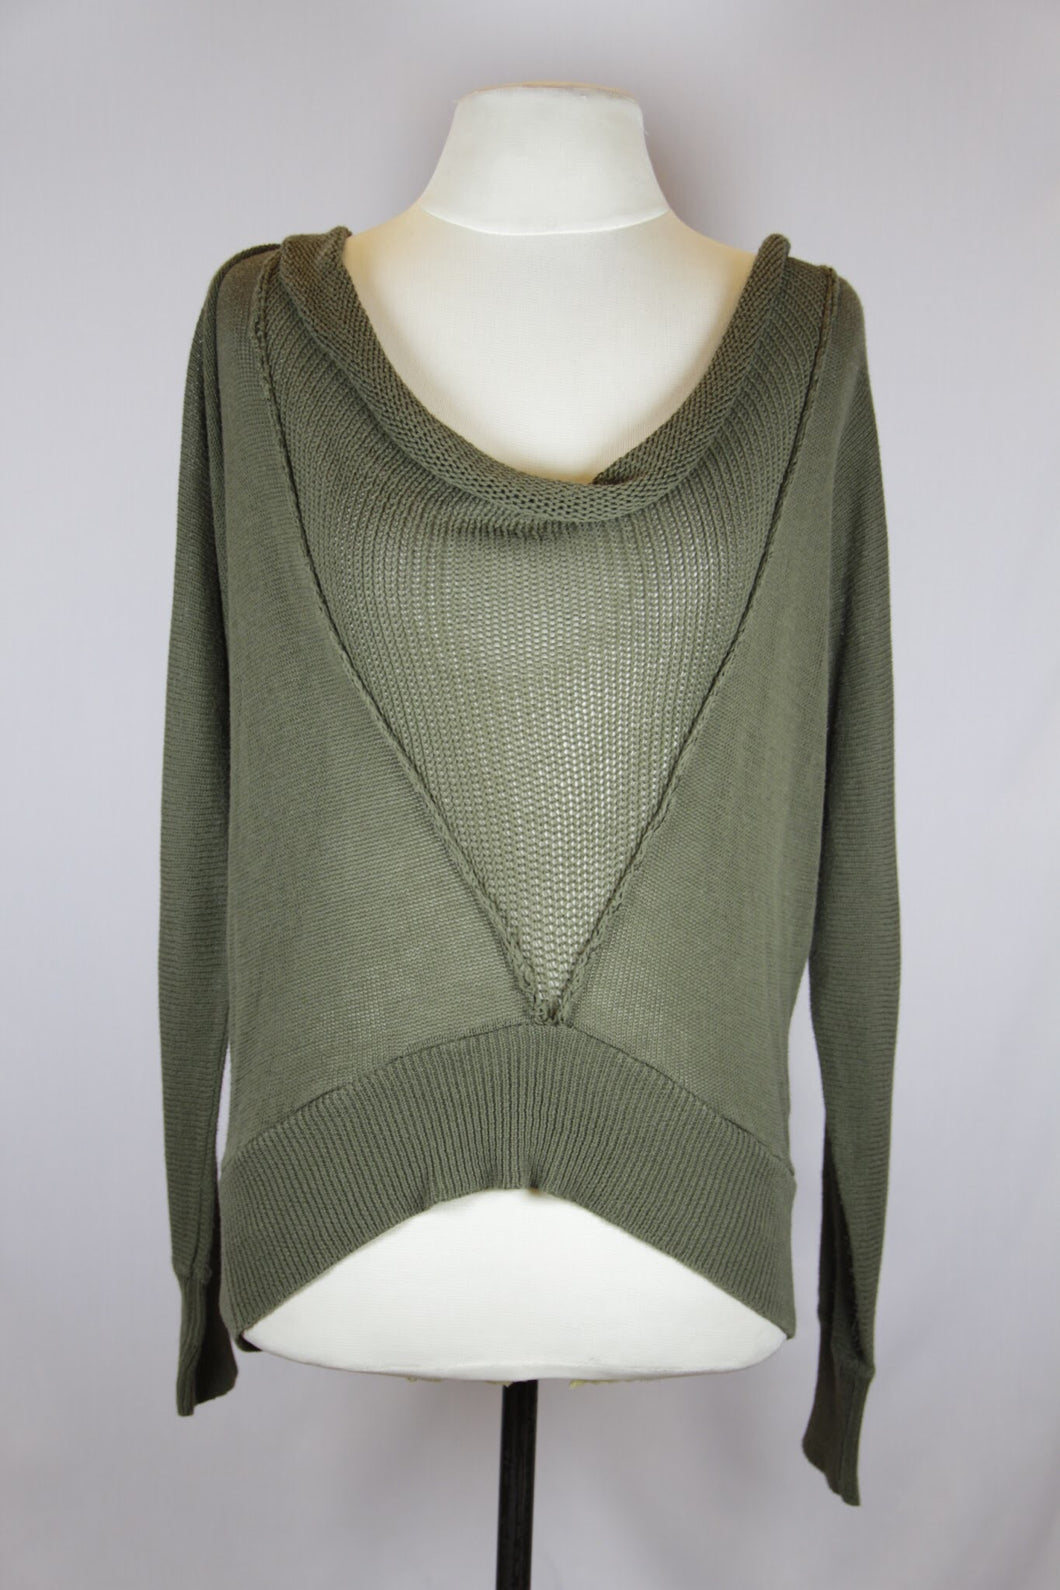 Rococo Green Knitted Long-Sleeved Sweater